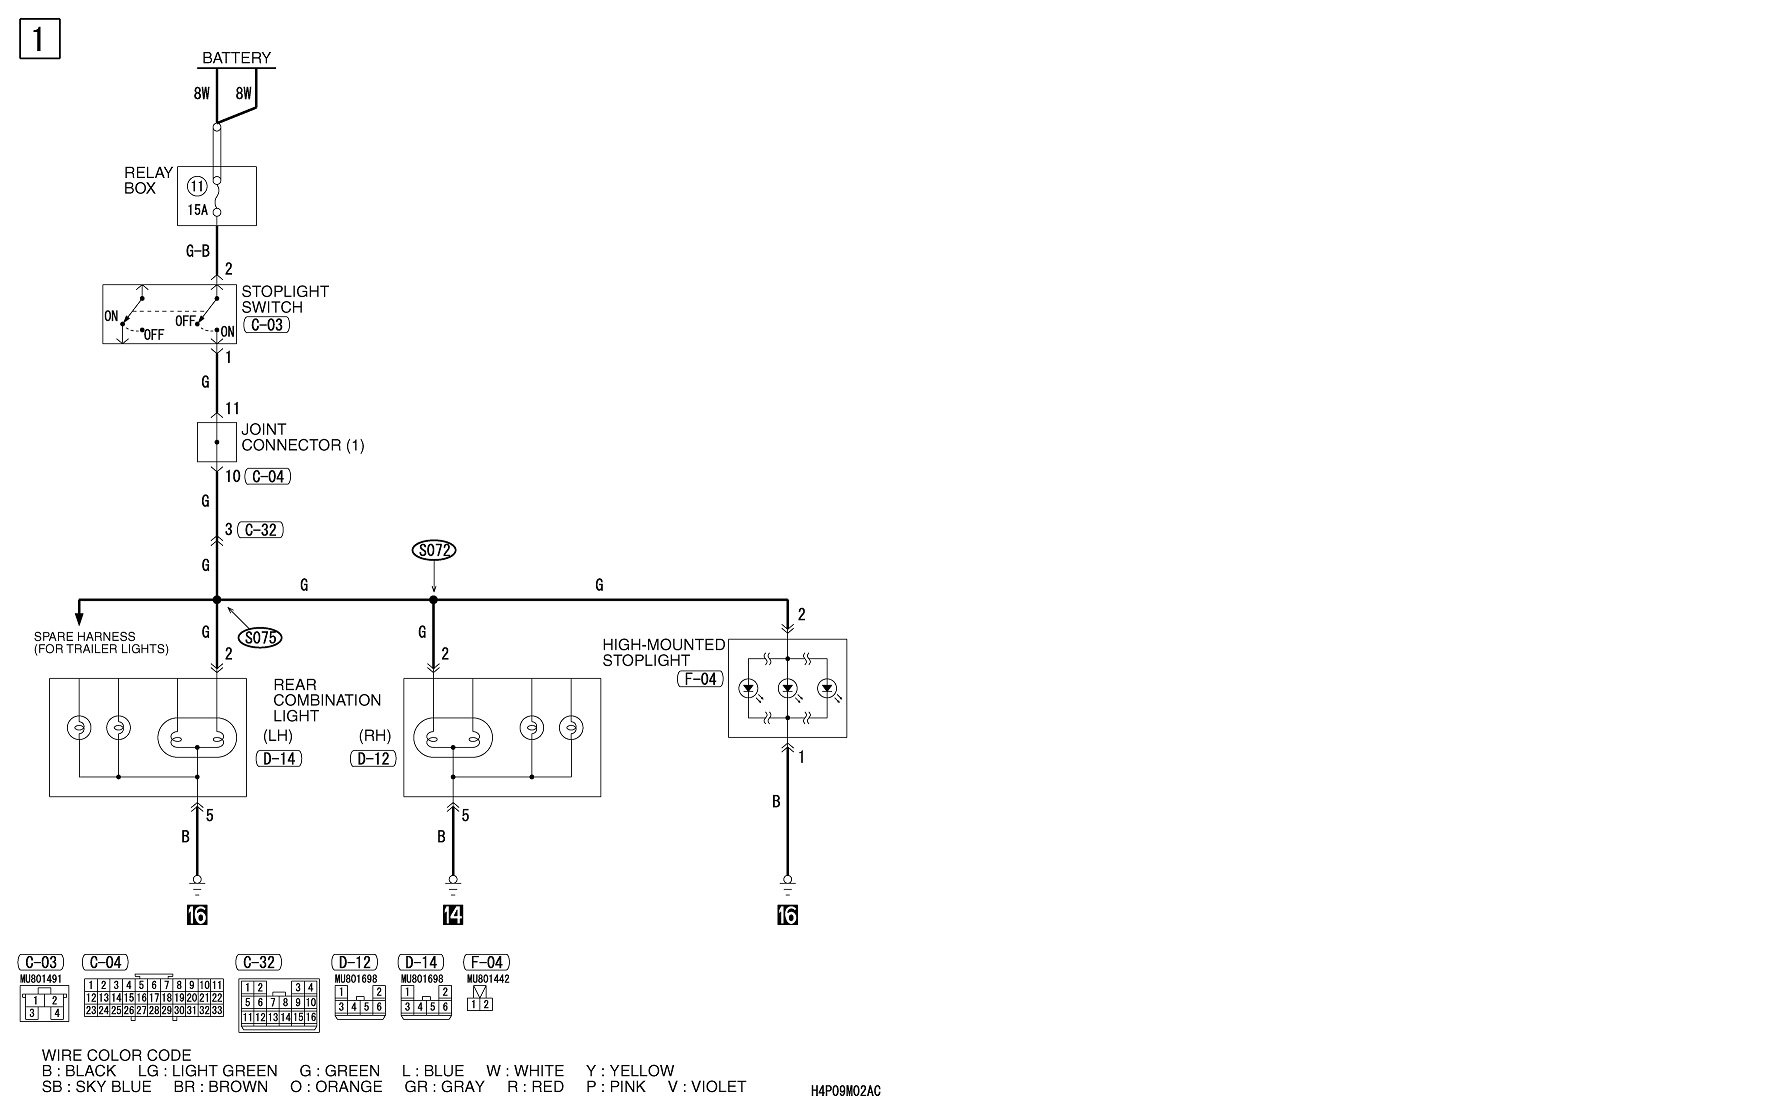 DIAGRAM] 2010 Mitsubishi Endeavor Wiring Diagram FULL Version HD Quality Wiring  Diagram - WIKIDIAGRAMS.SIGGY2000.DEwikidiagrams.siggy2000.de